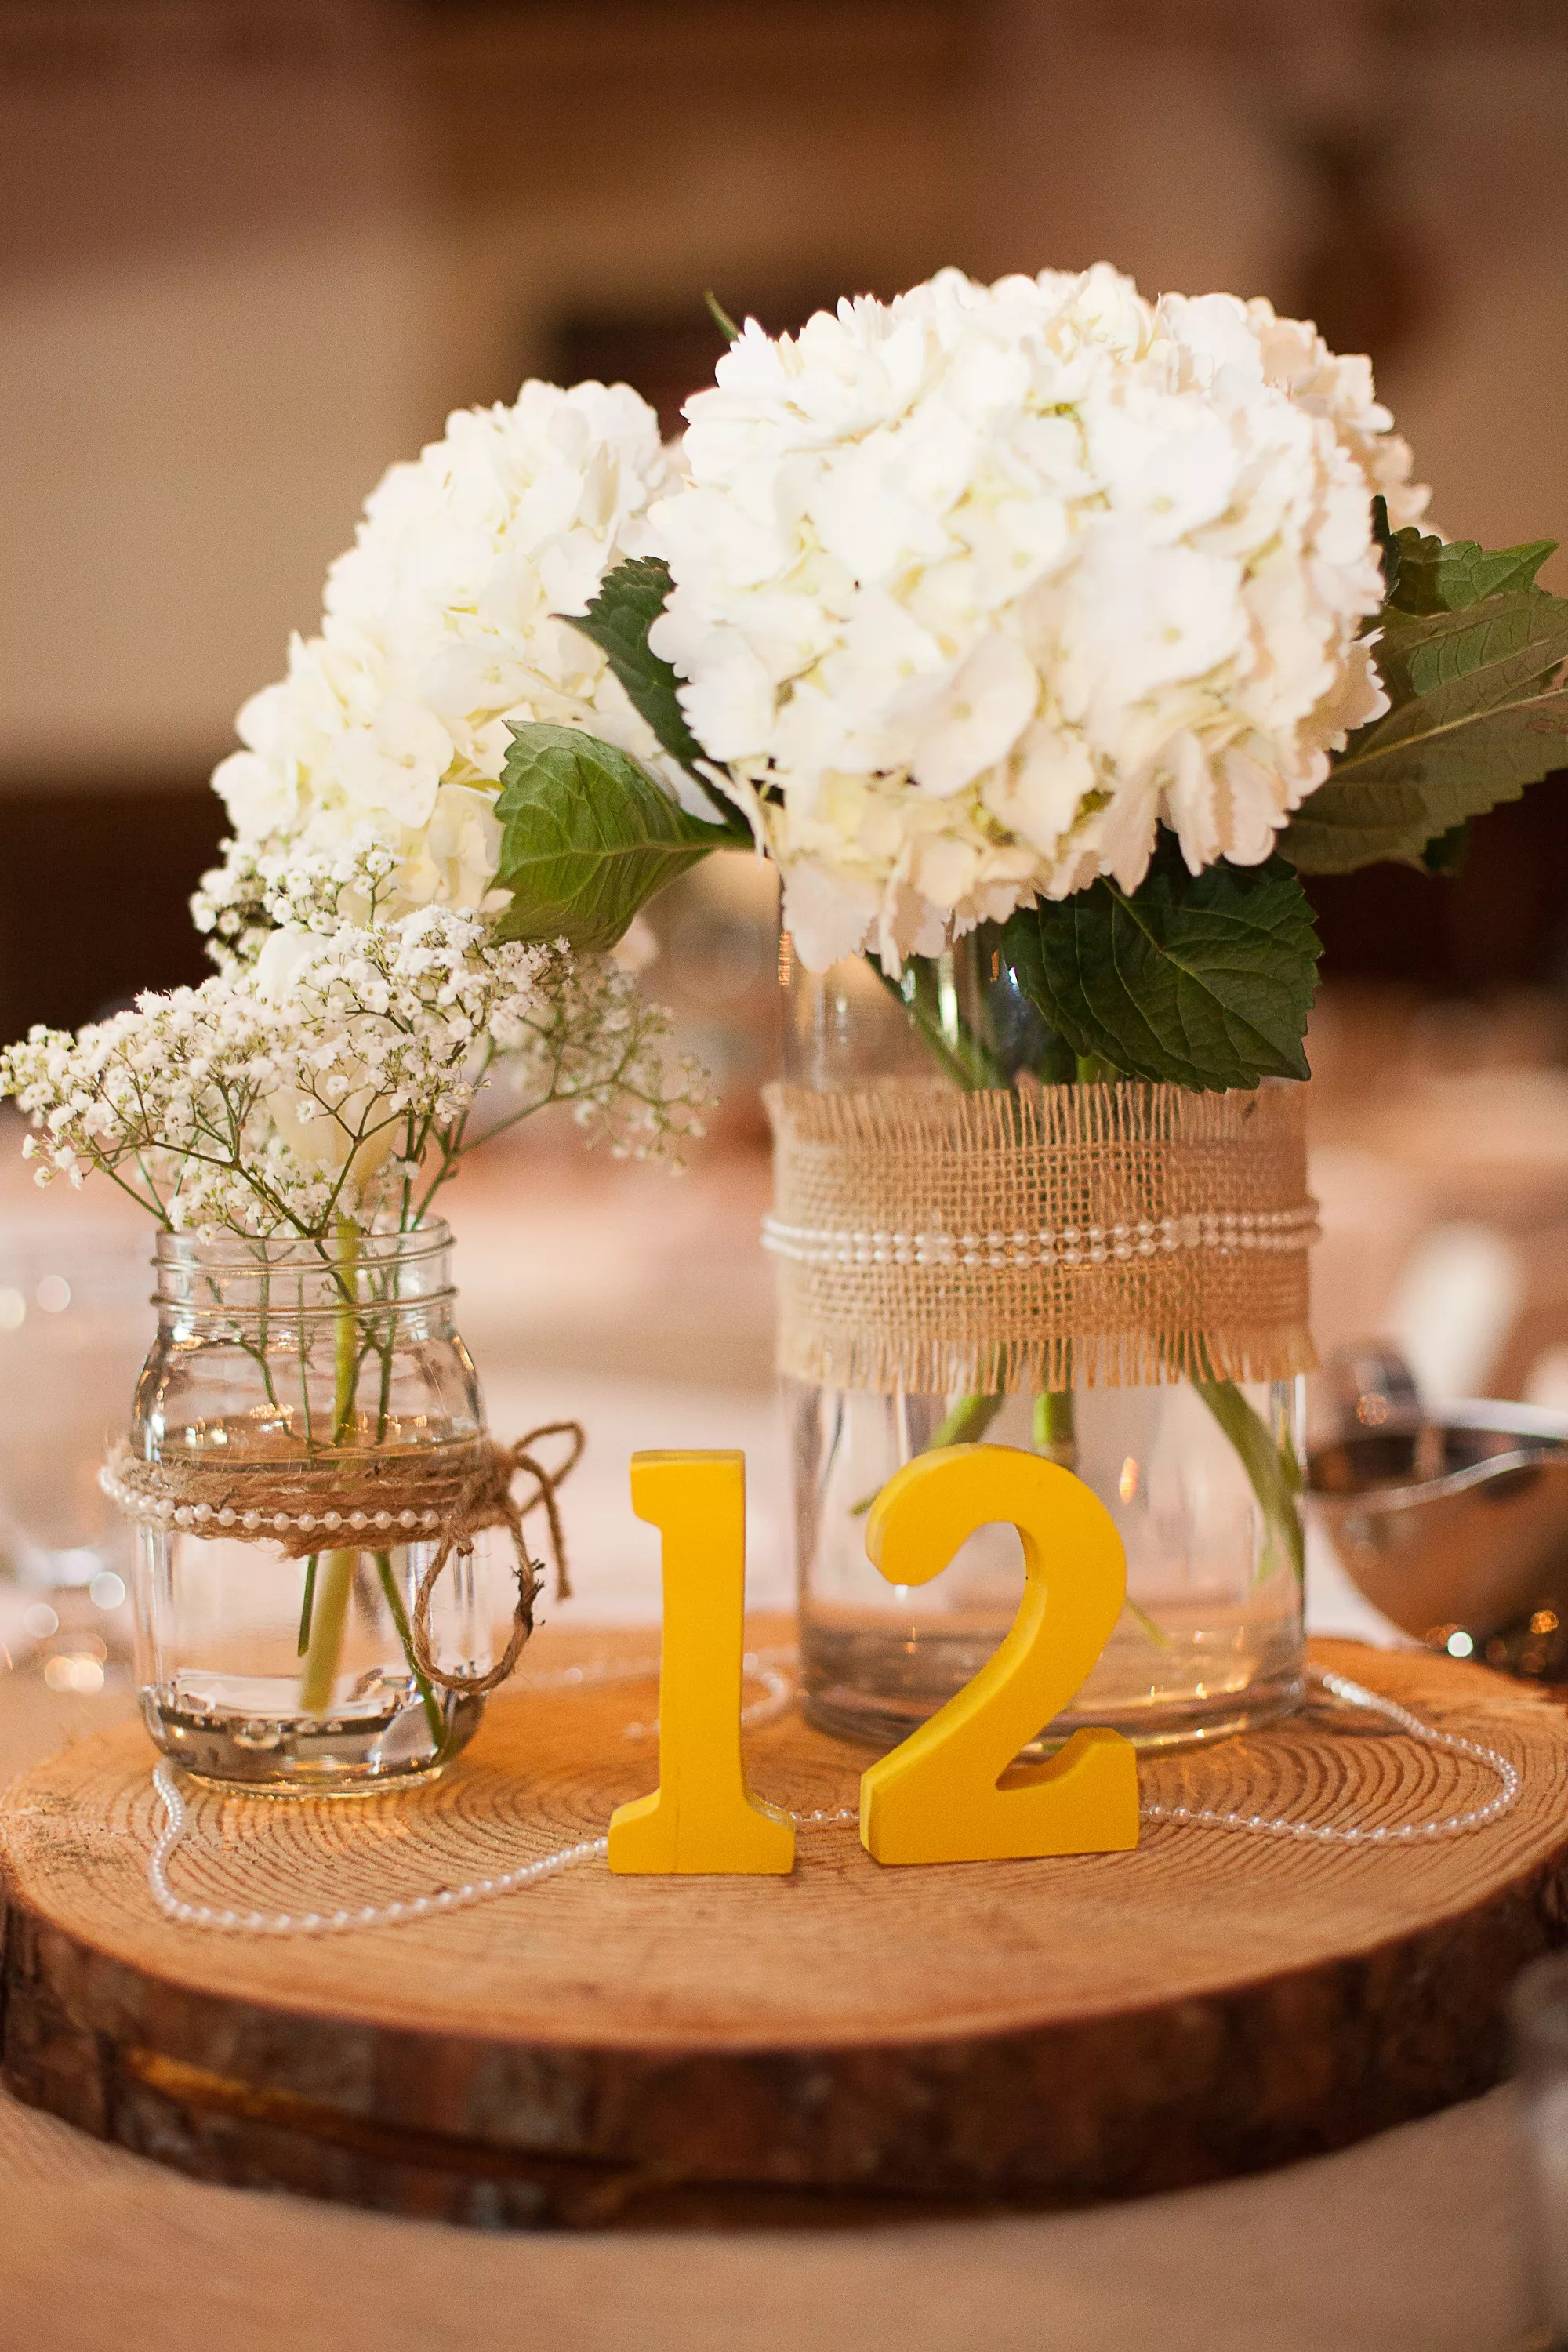 Centerpieces of White Hydrangeas and Babys Breath in